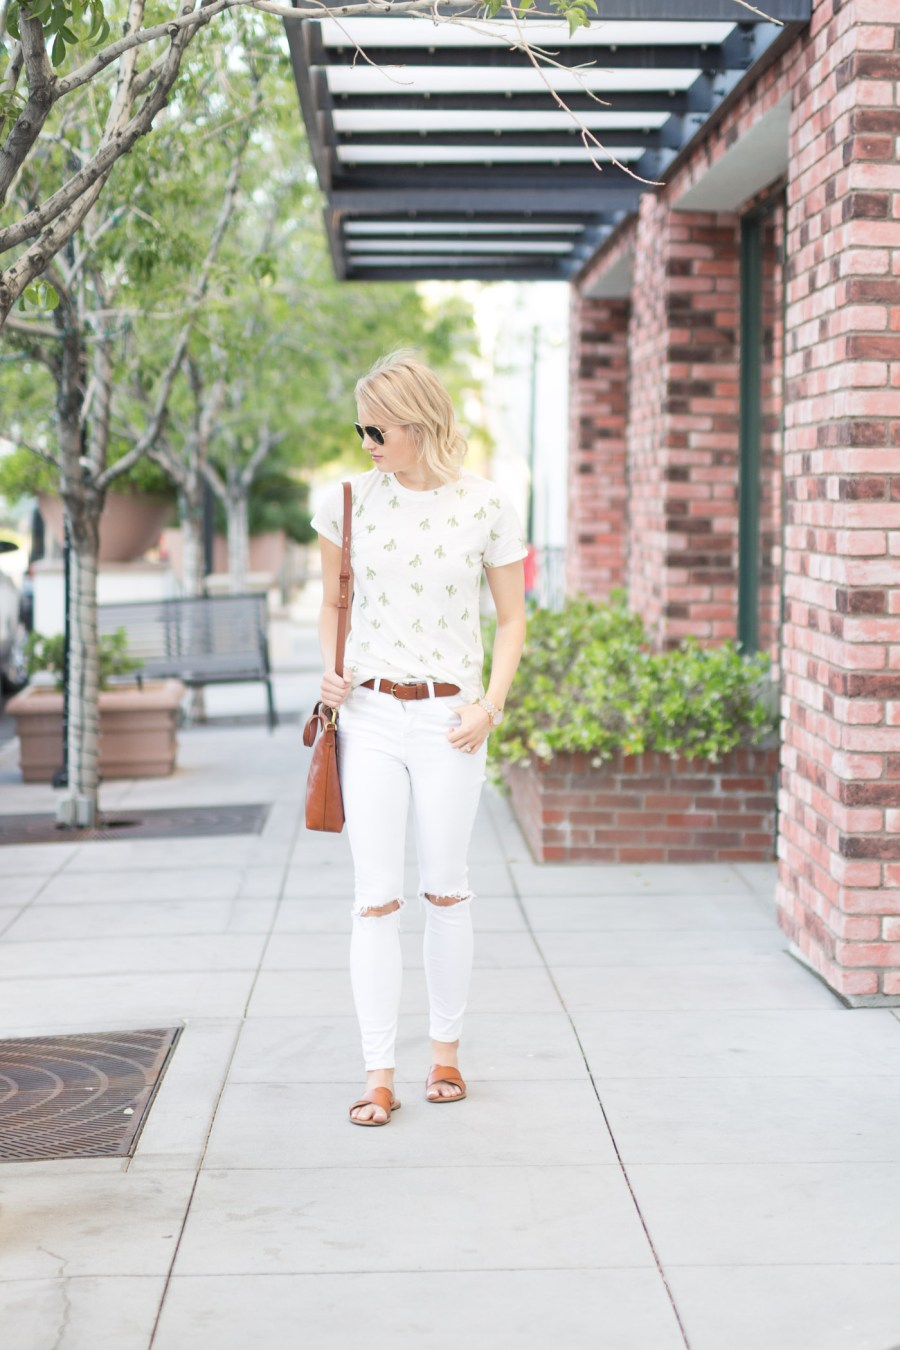 cactus print trend, cactus t-shirt from target, fashion blog, spring outfit idea, Treats and Trends